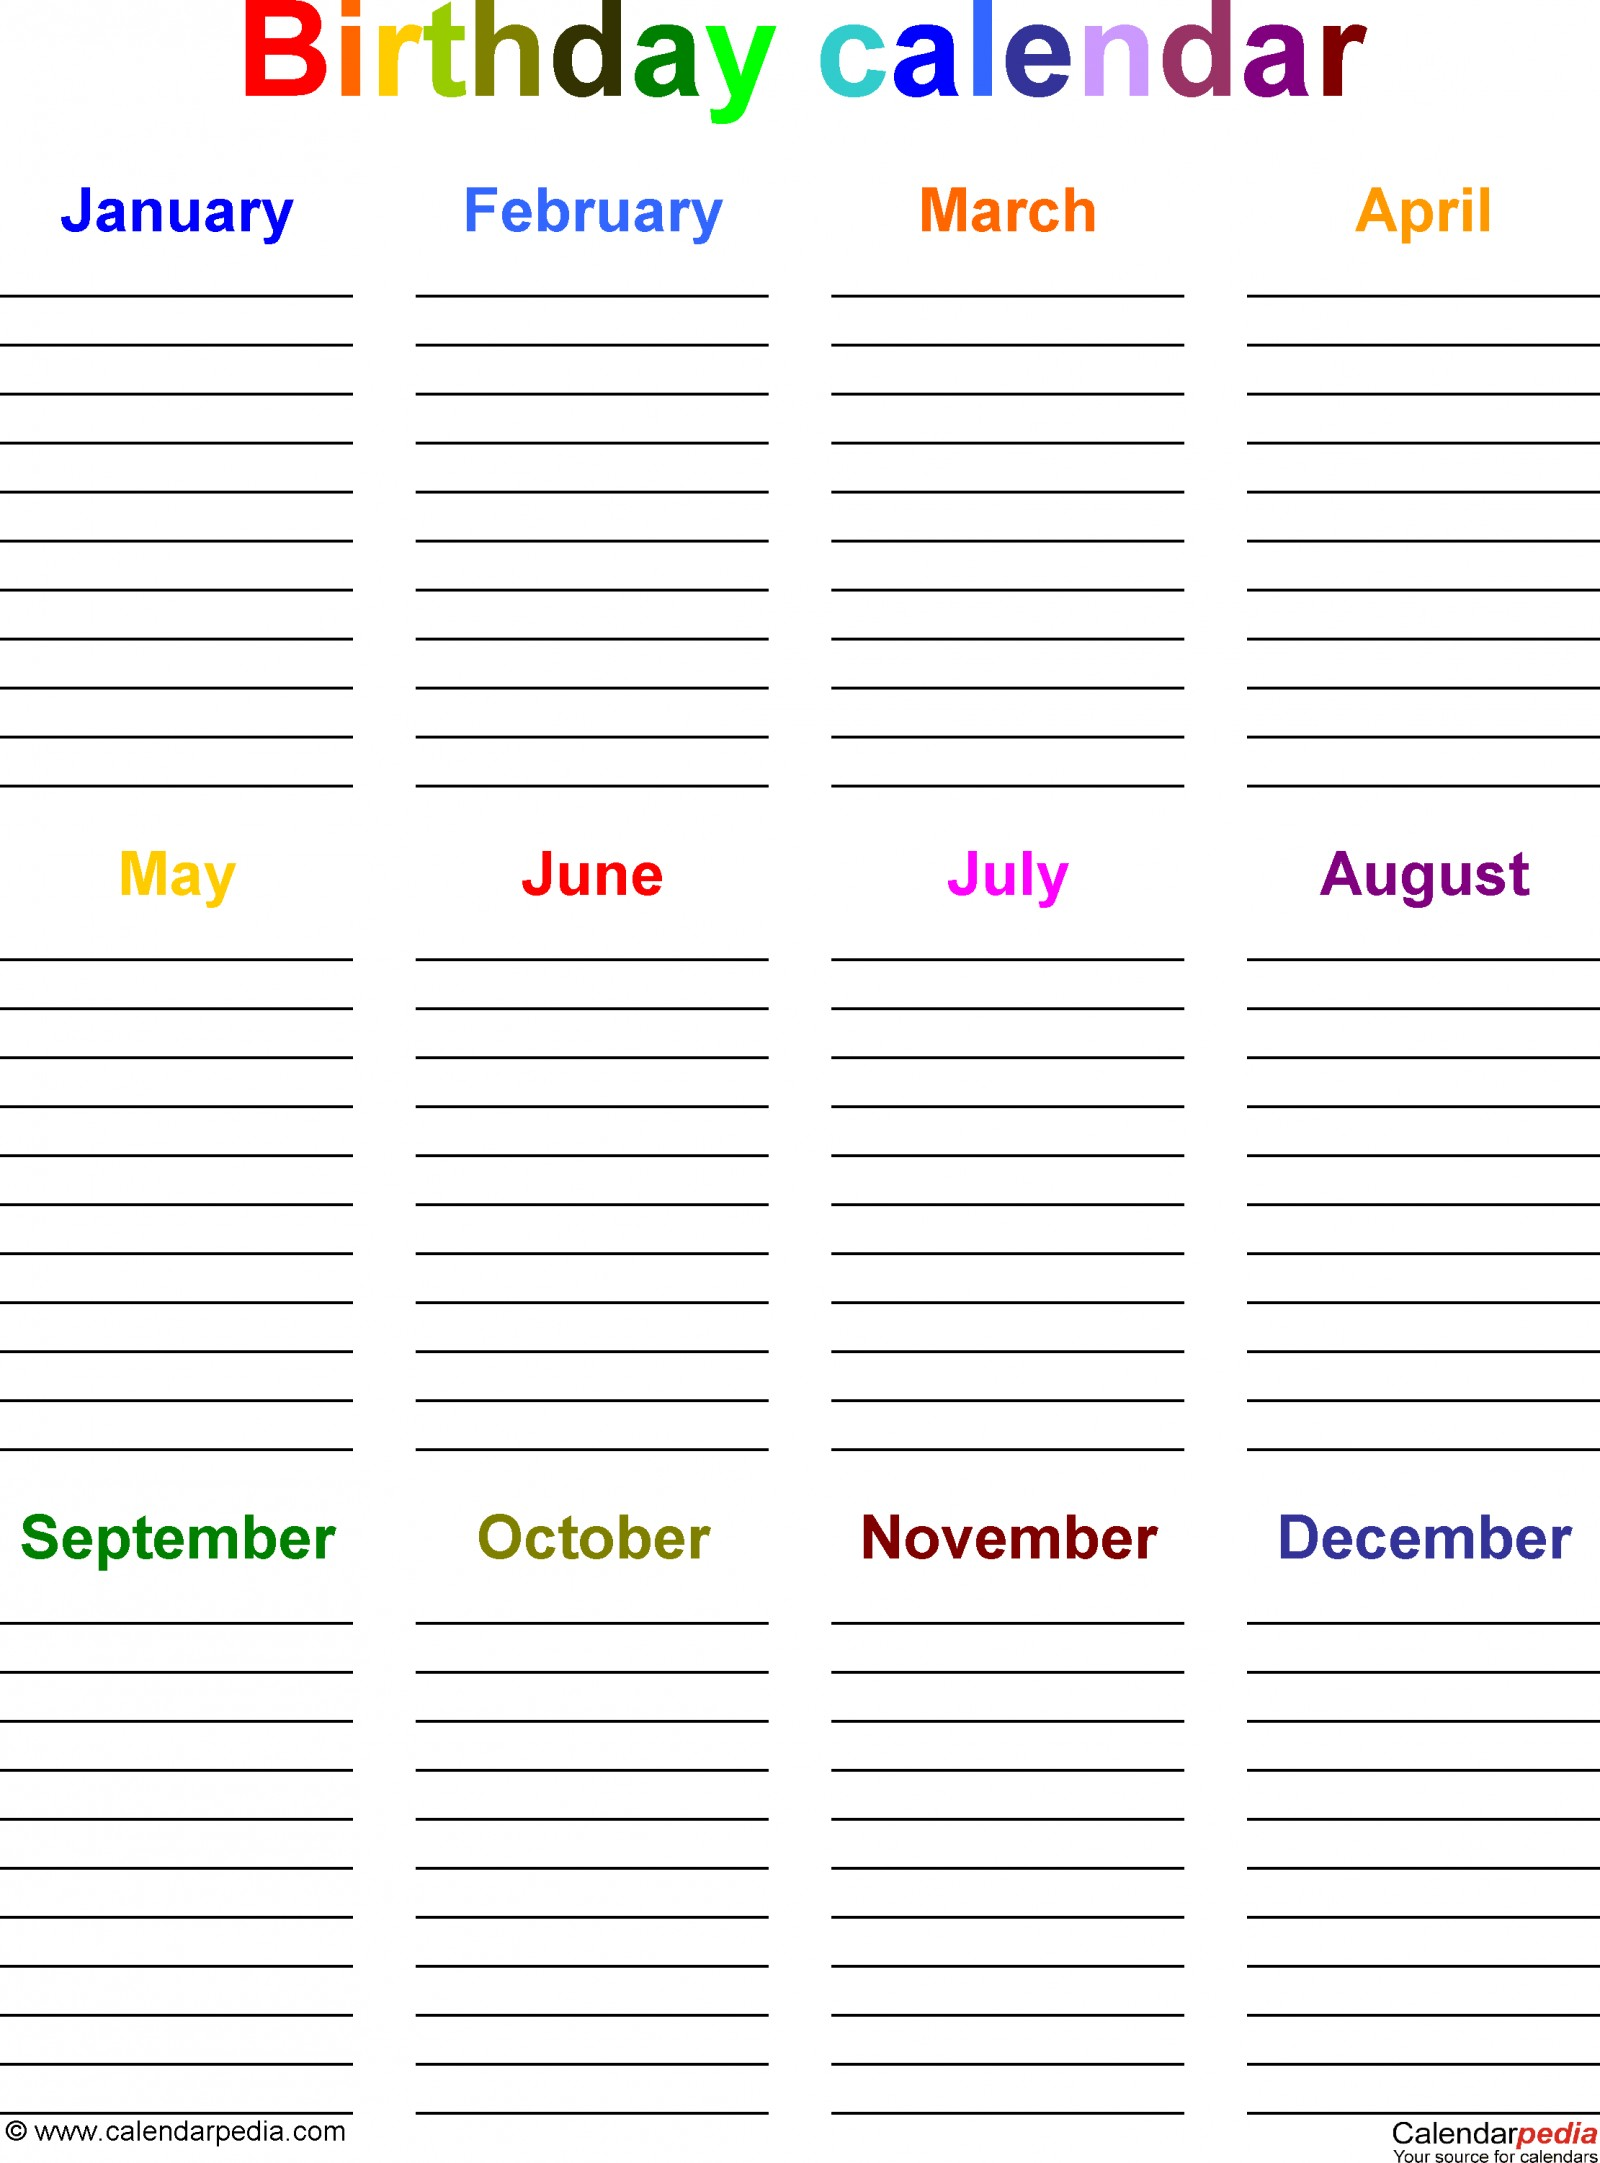 birthday calendars 7 free printable word templates calen calendar template microsoft pocket excel 2010 1600